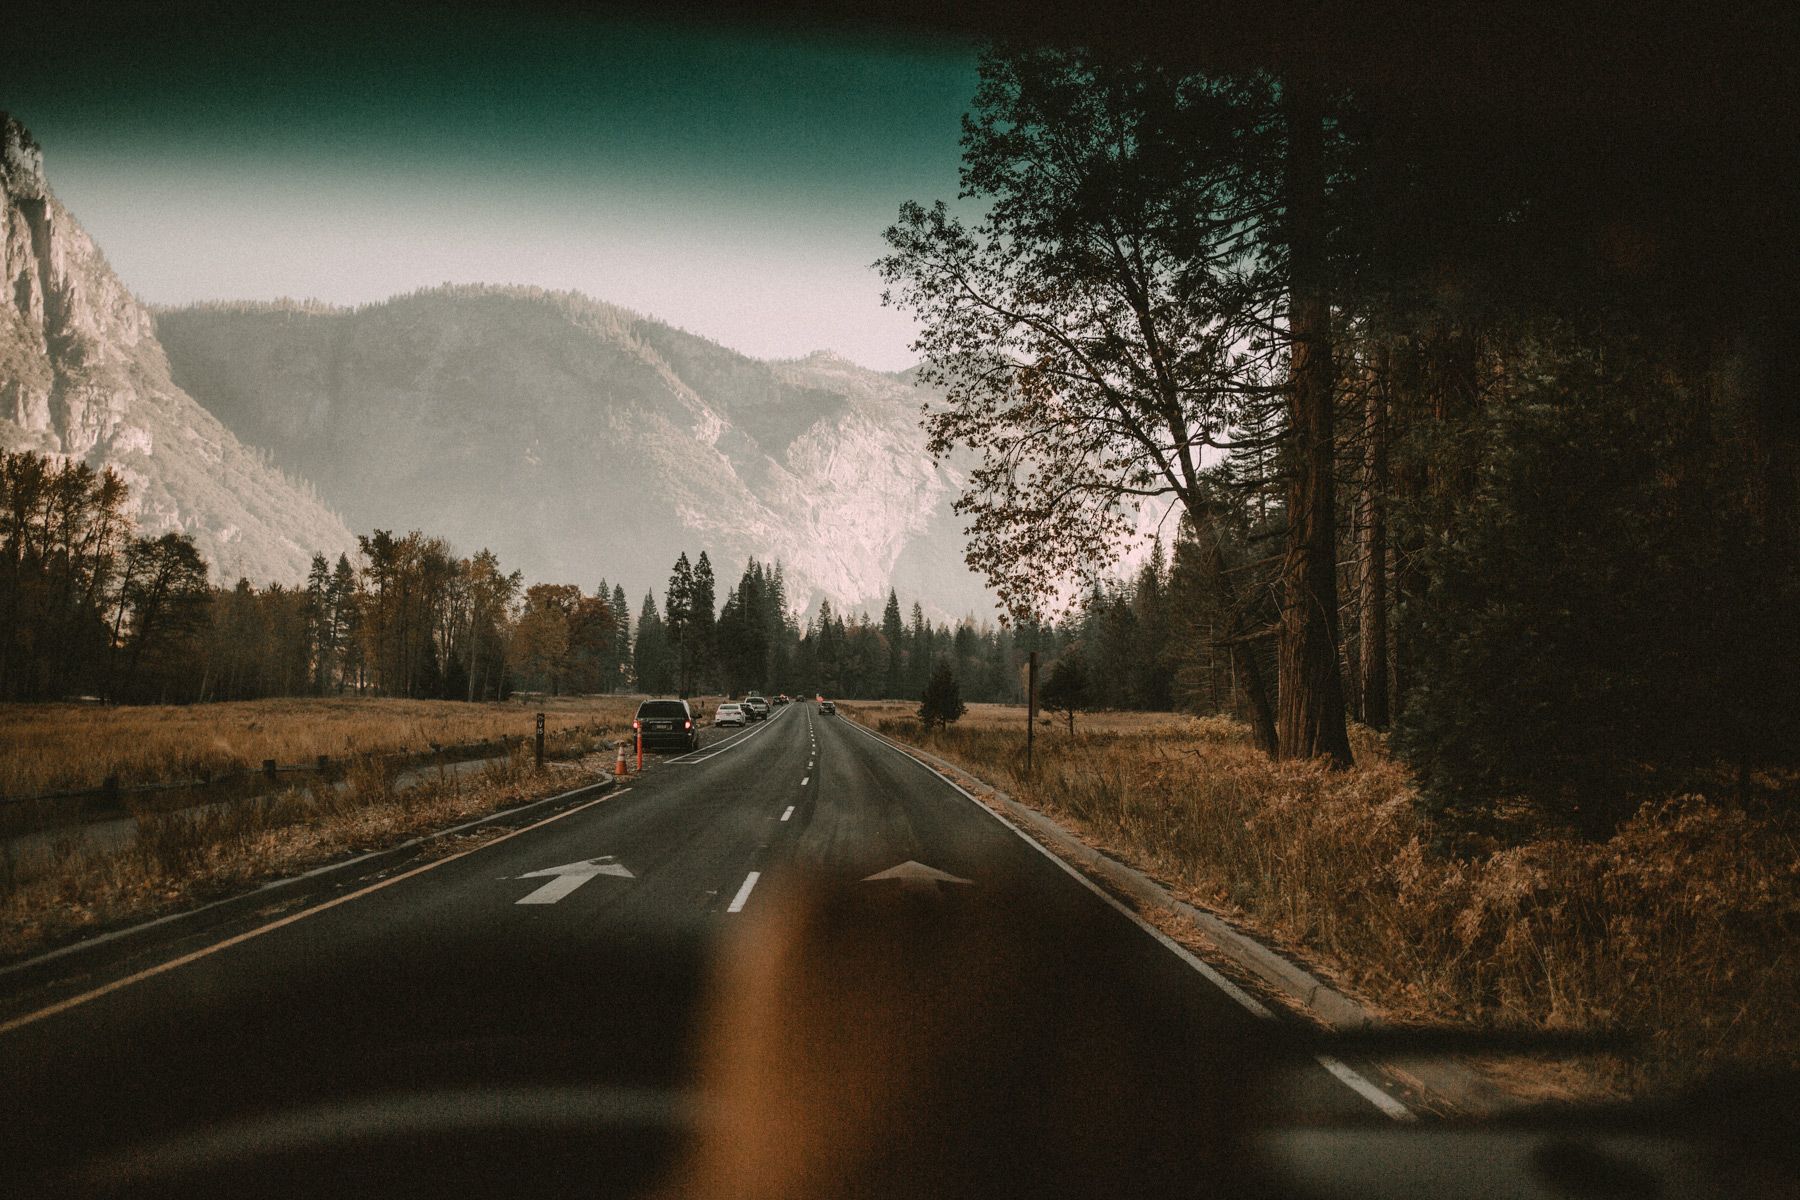 Anna Heupel - Roadtrip California